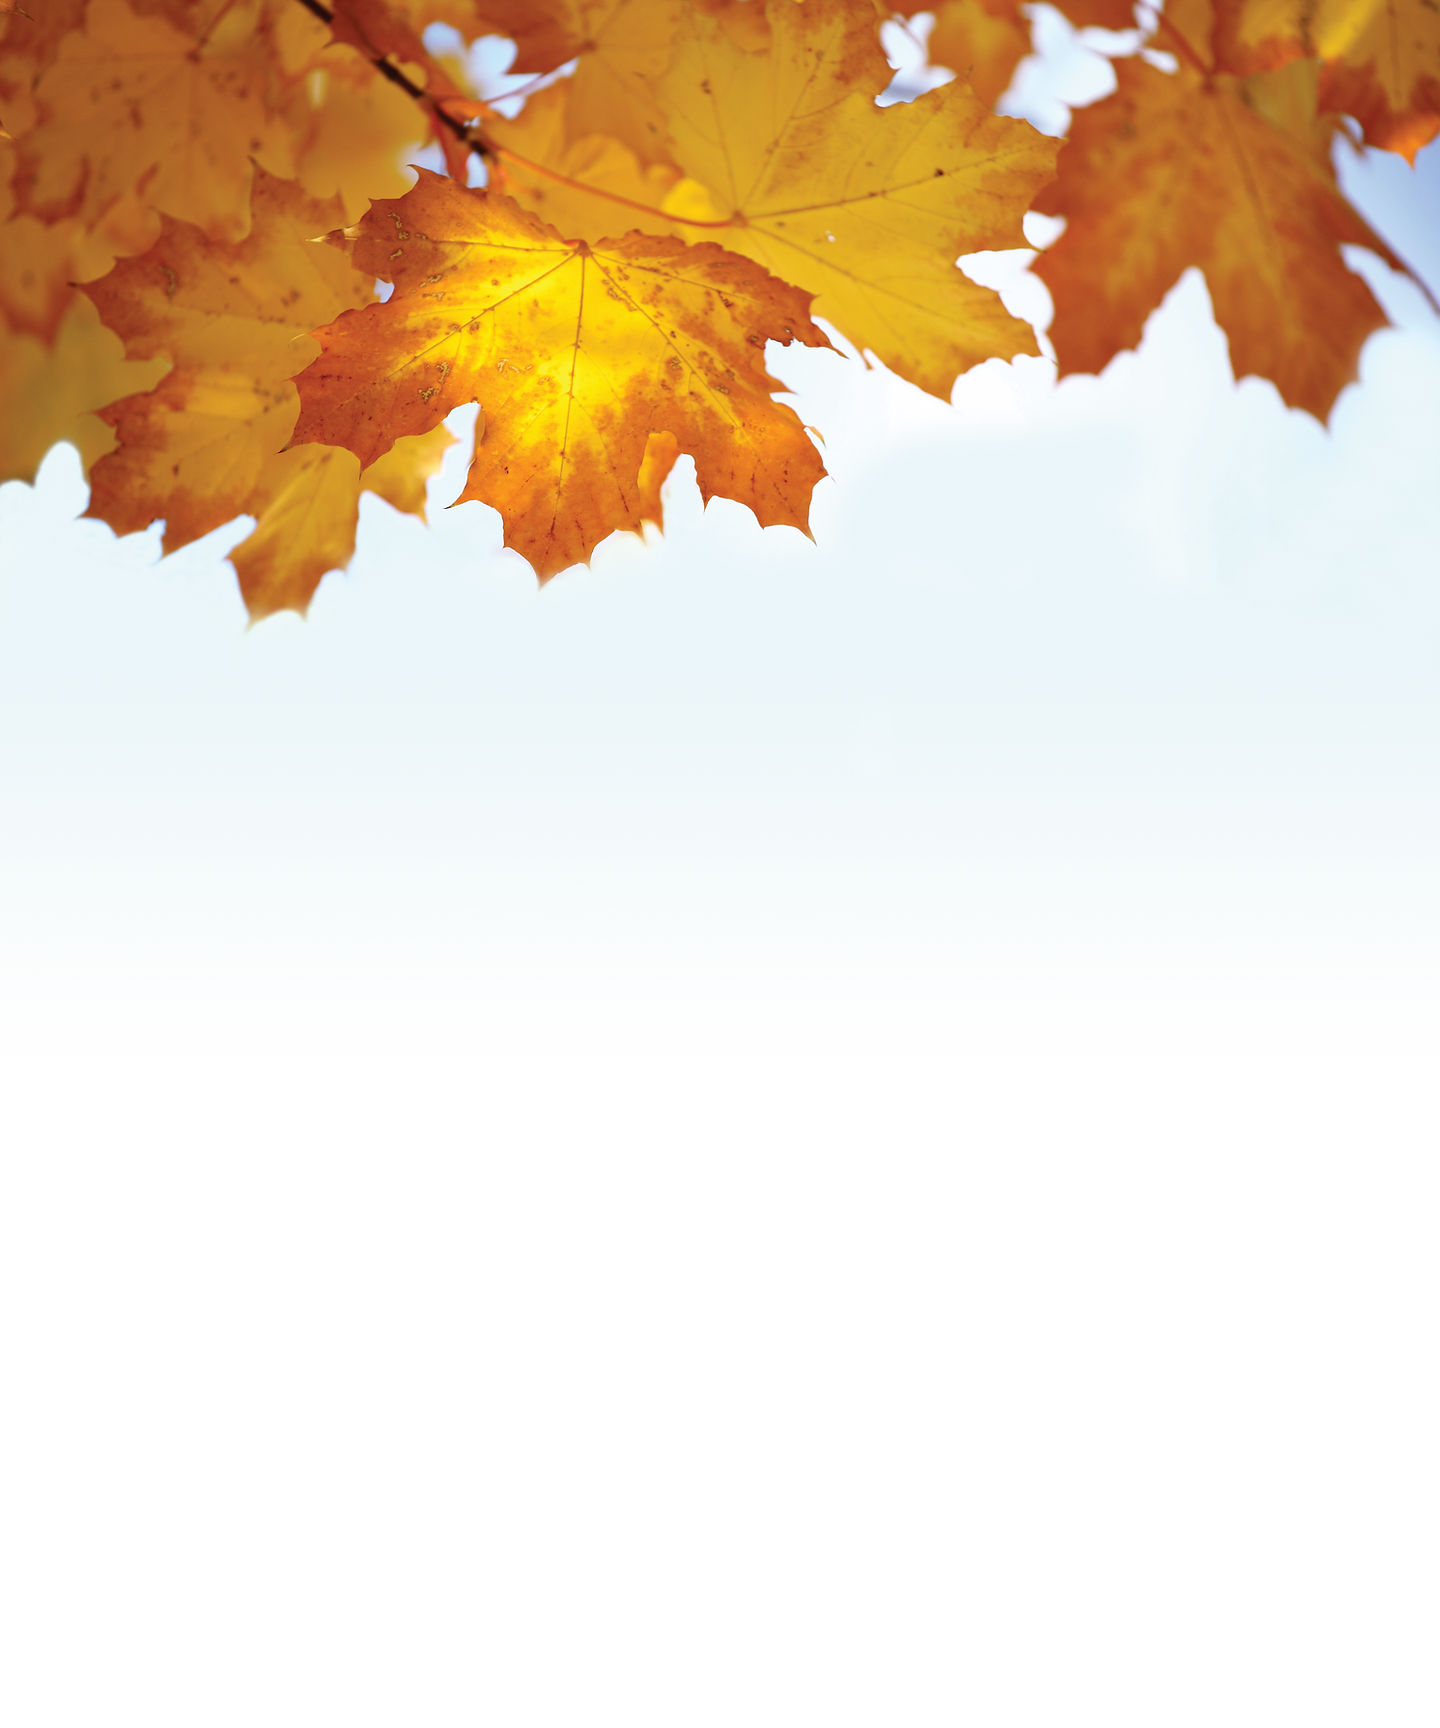 100709AutumnLeaves-Recovered-2.png